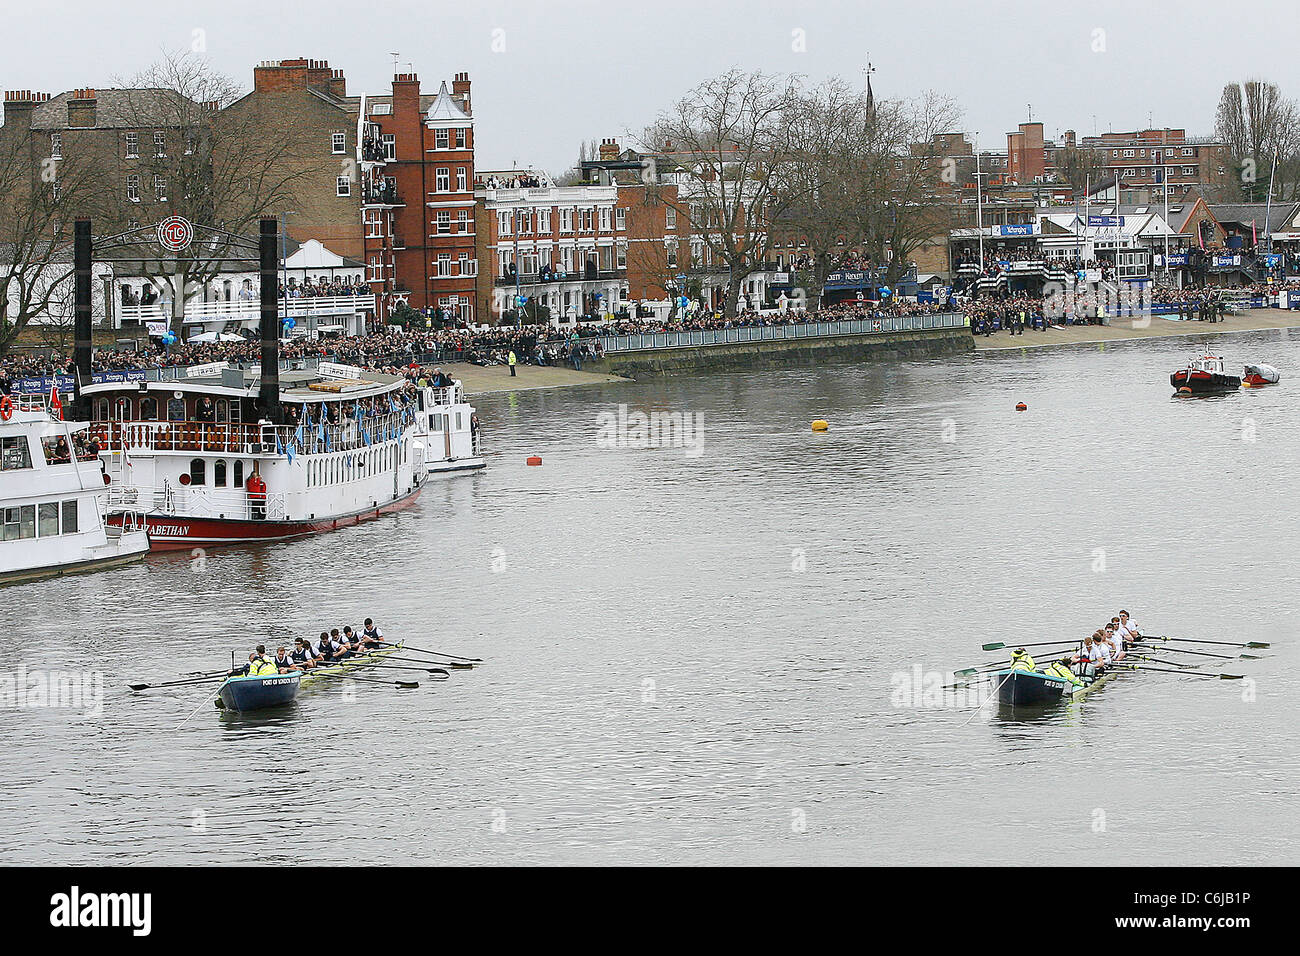 Oxfrod and Cambridge boat teams at the start of the 156th Oxford vs Cambridge boat race on River Thames London, - Stock Image